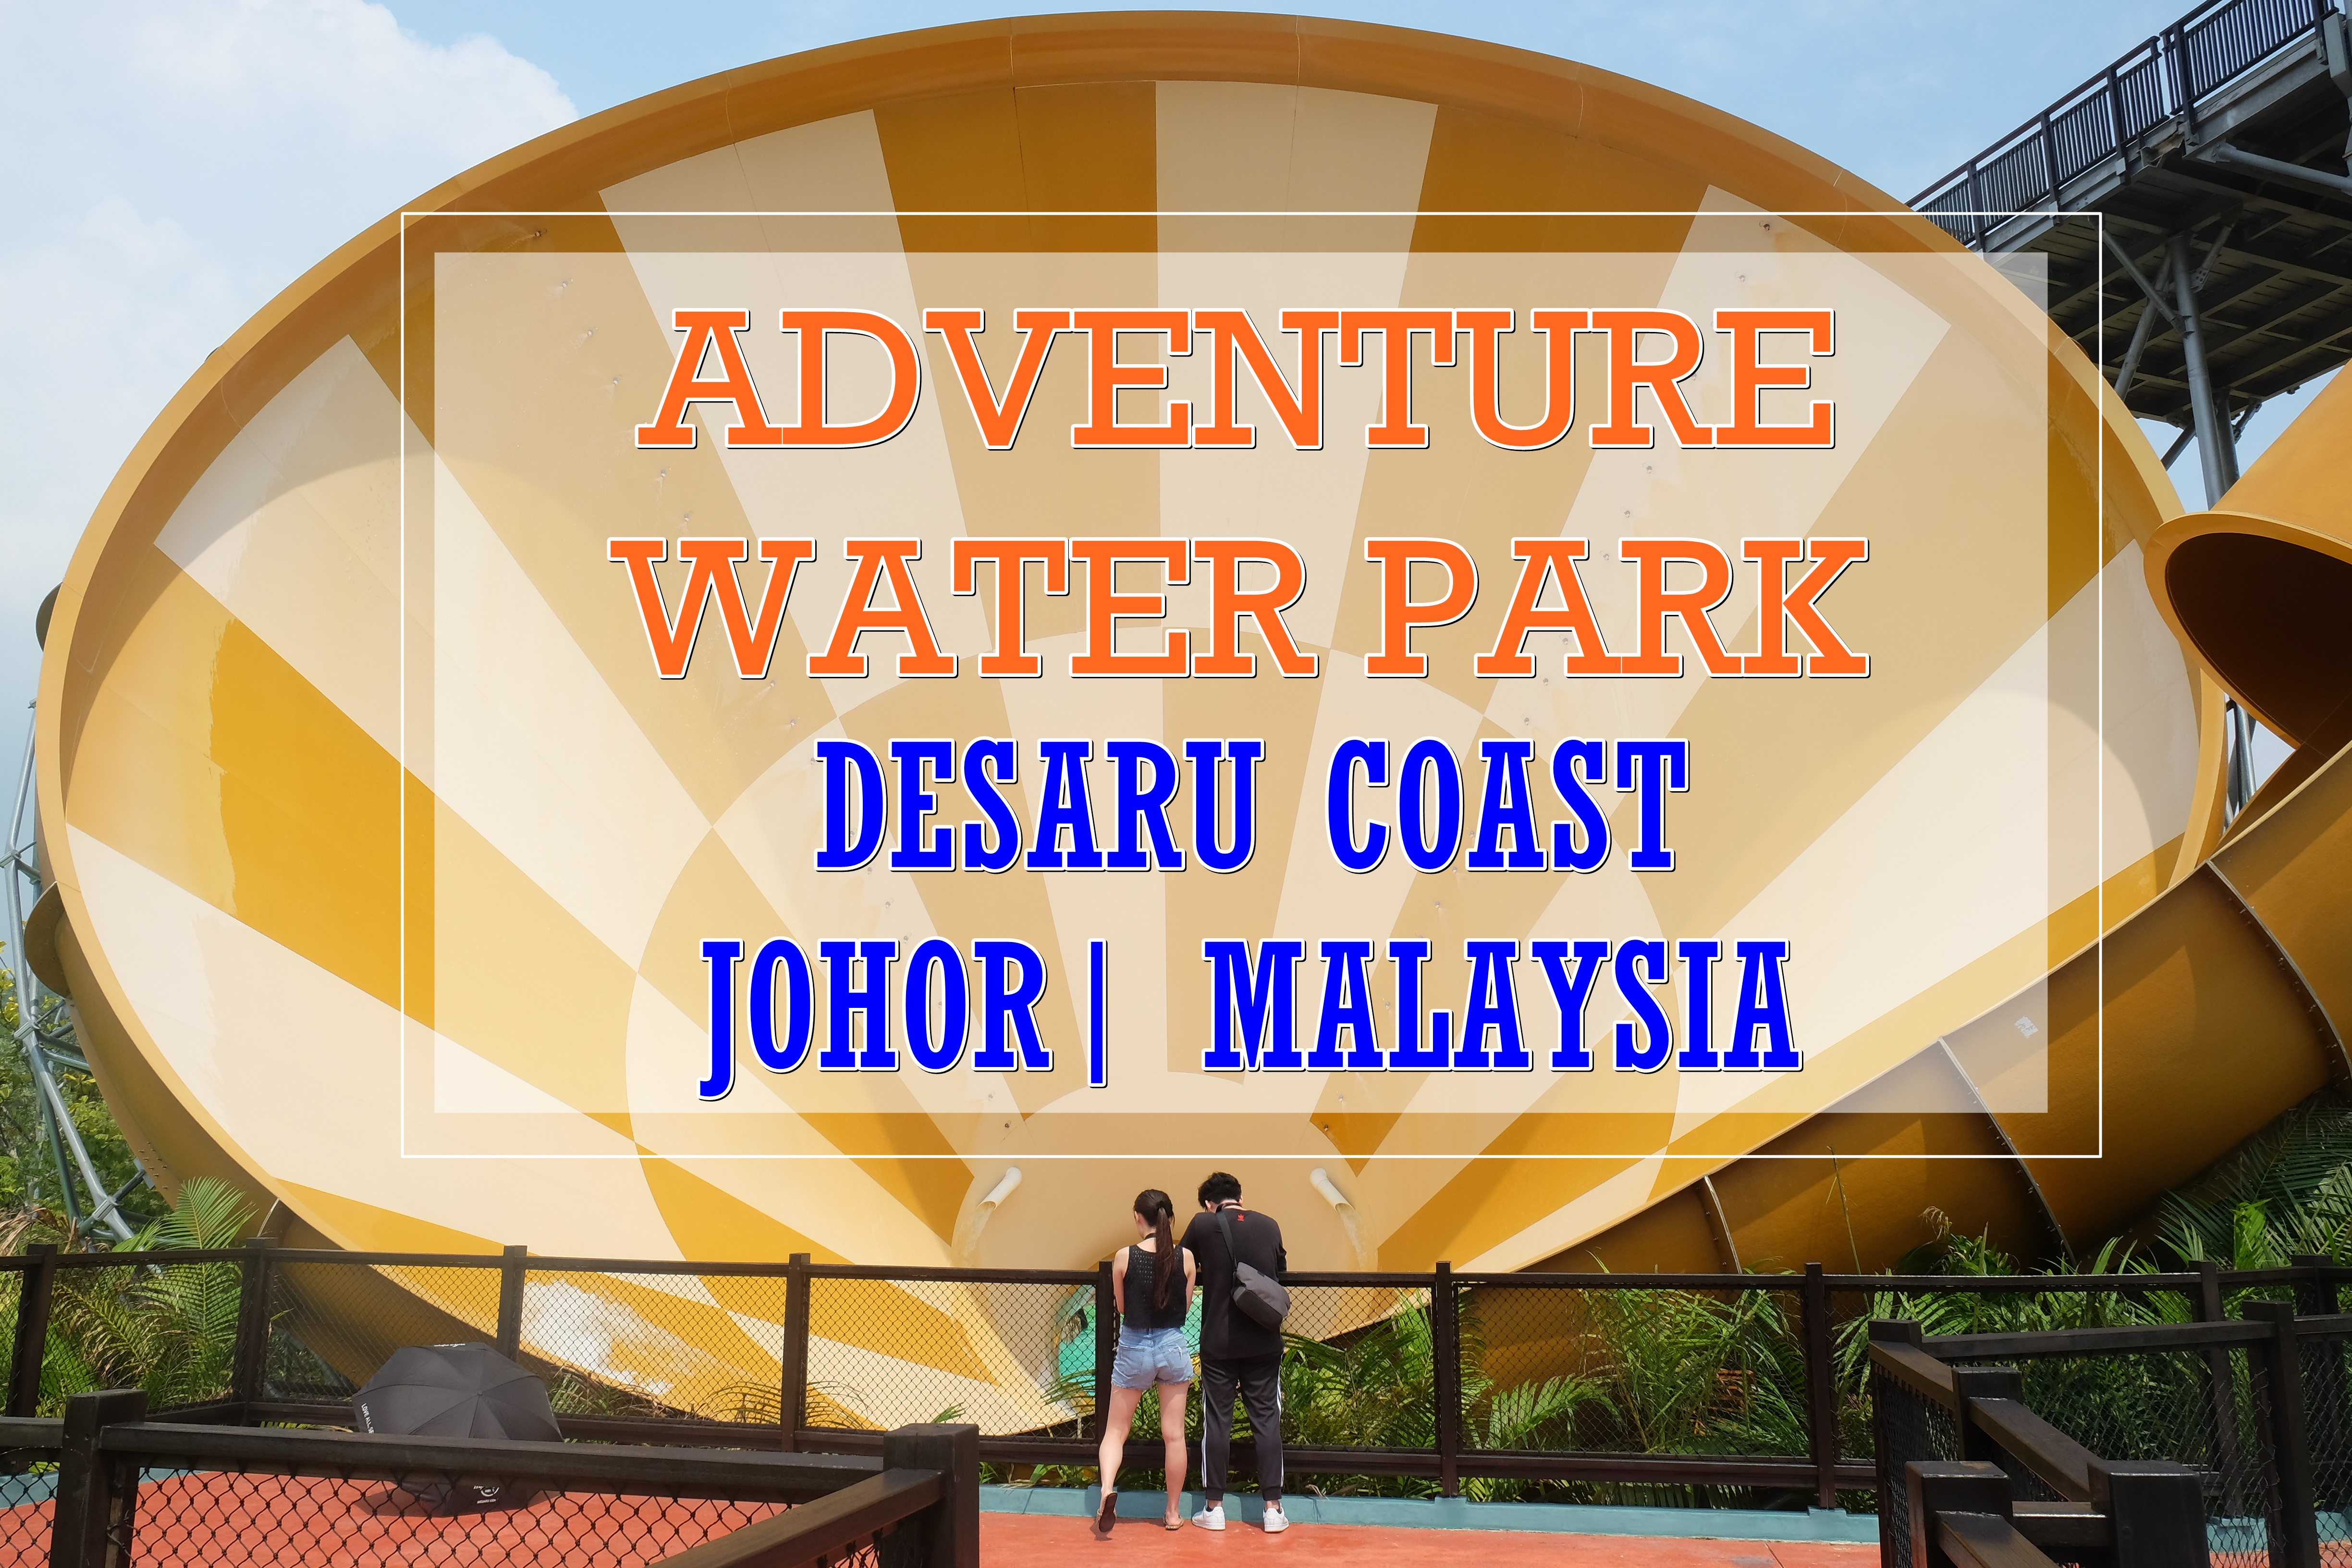 [M'SIA TRAVELS] Desaru Coast Adventure Waterpark – Family-Friendly Attraction Place in Johor Bahru